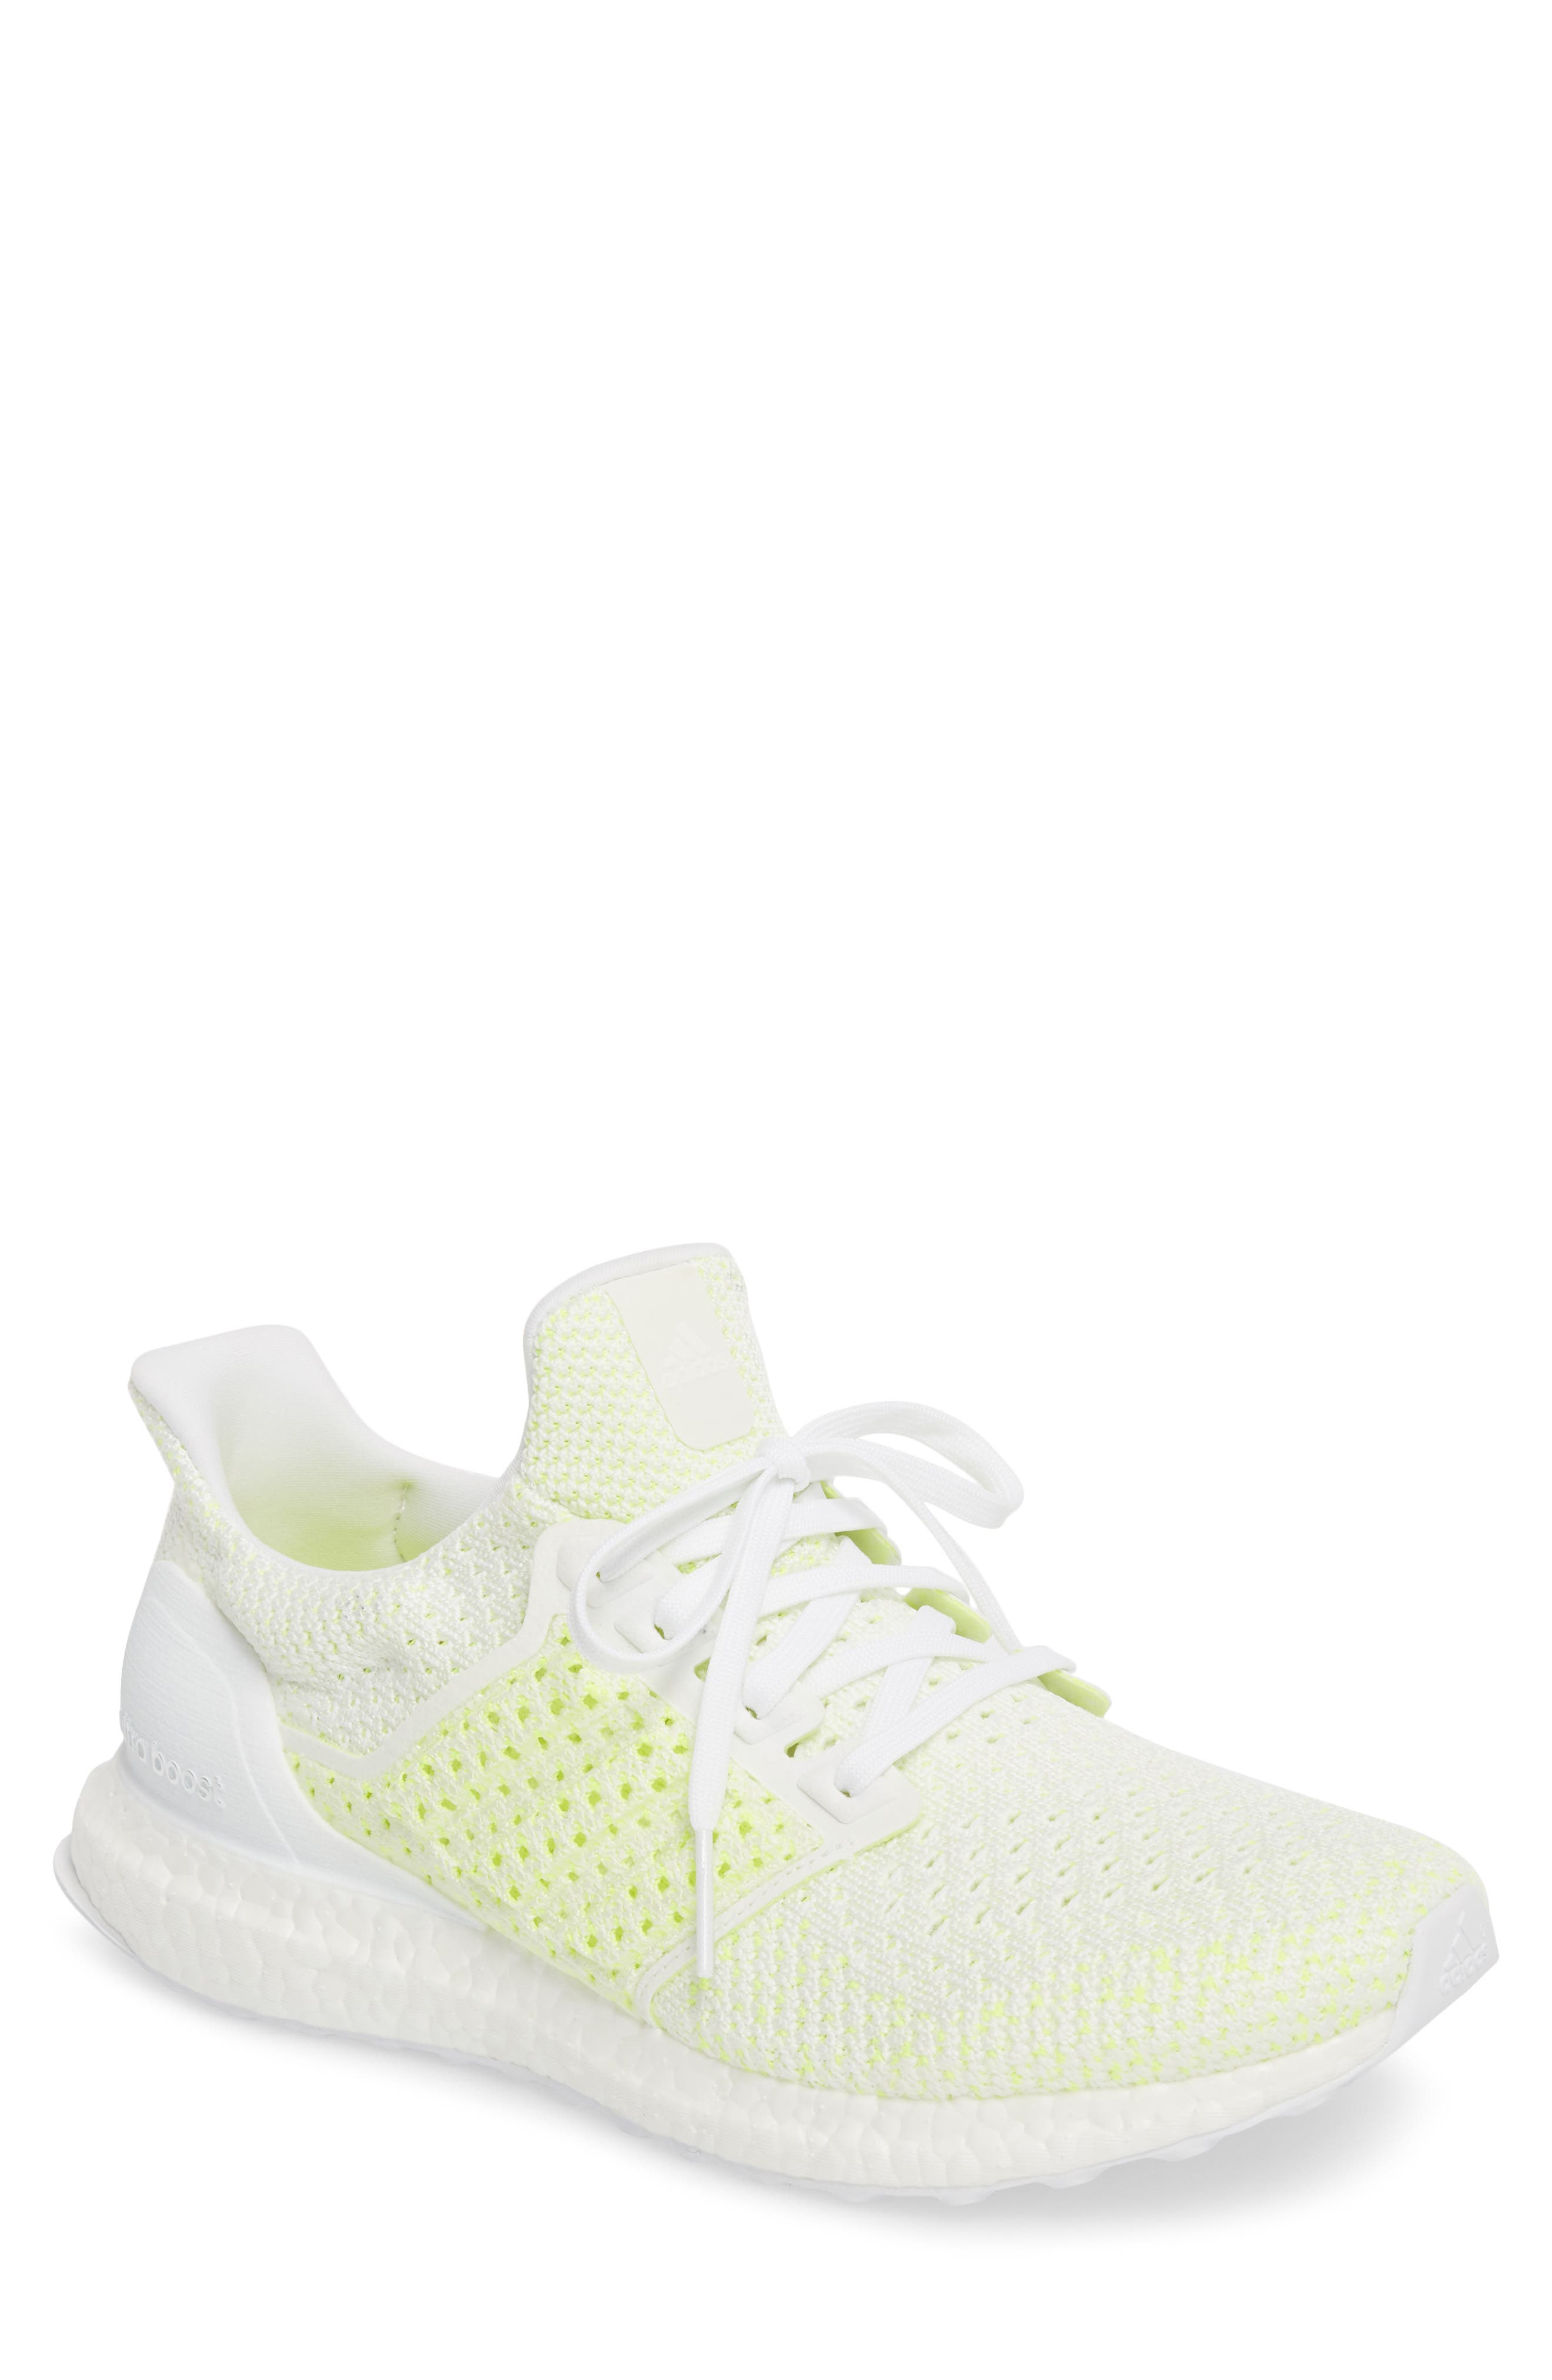 Ultraboost x Clima Running Shoe,                             Main thumbnail 1, color,                             WHITE/ WHITE/ SOLAR RED